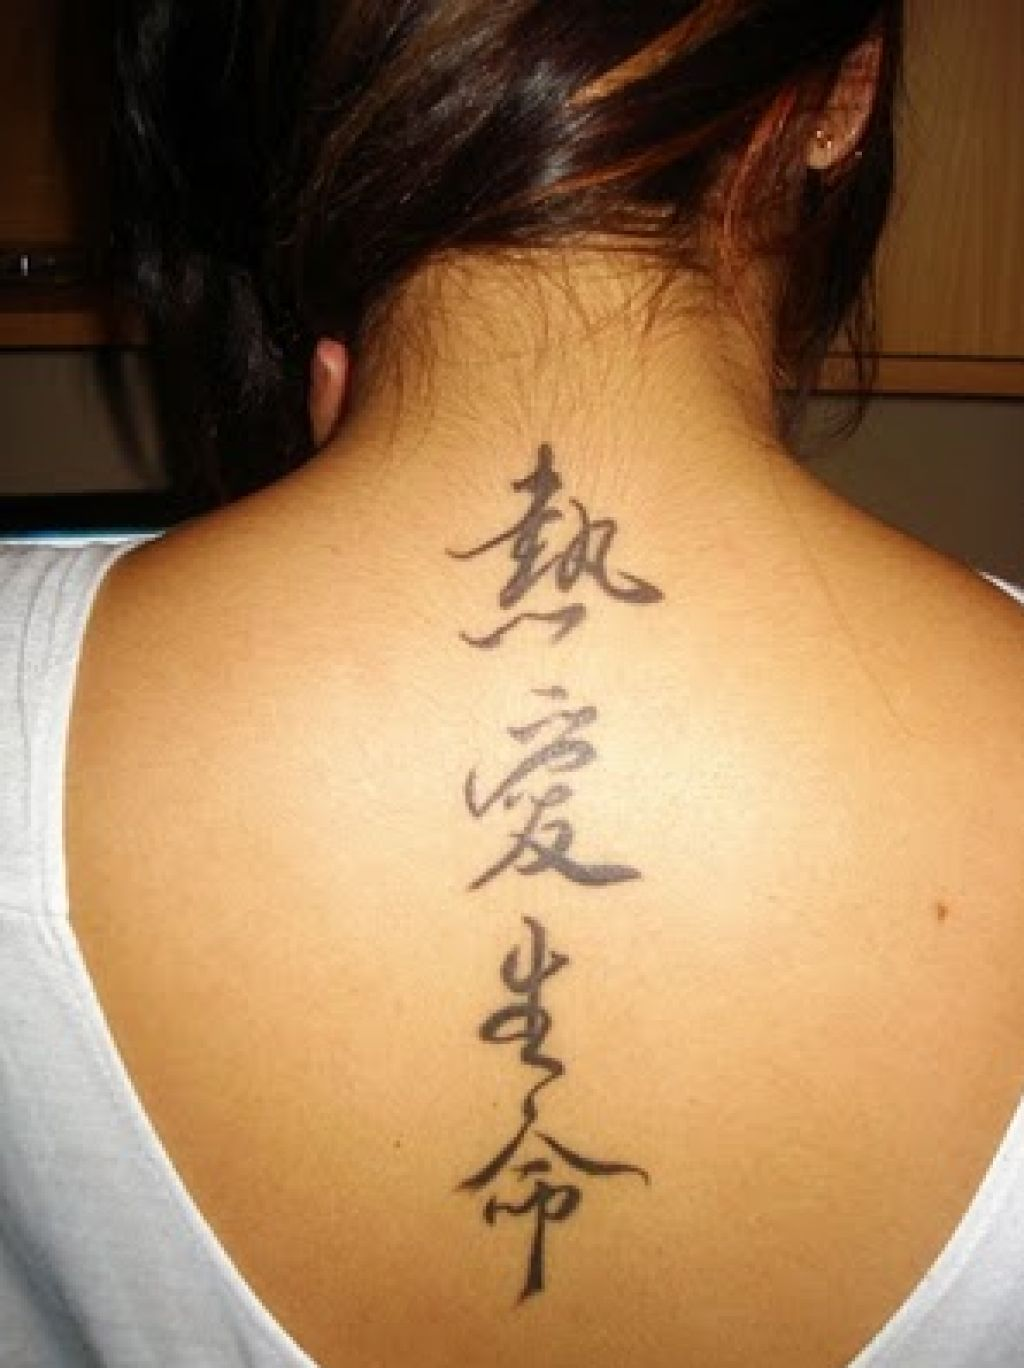 Crazy And Amazing Chinese Writing Symbols Tattoo Love Pictures